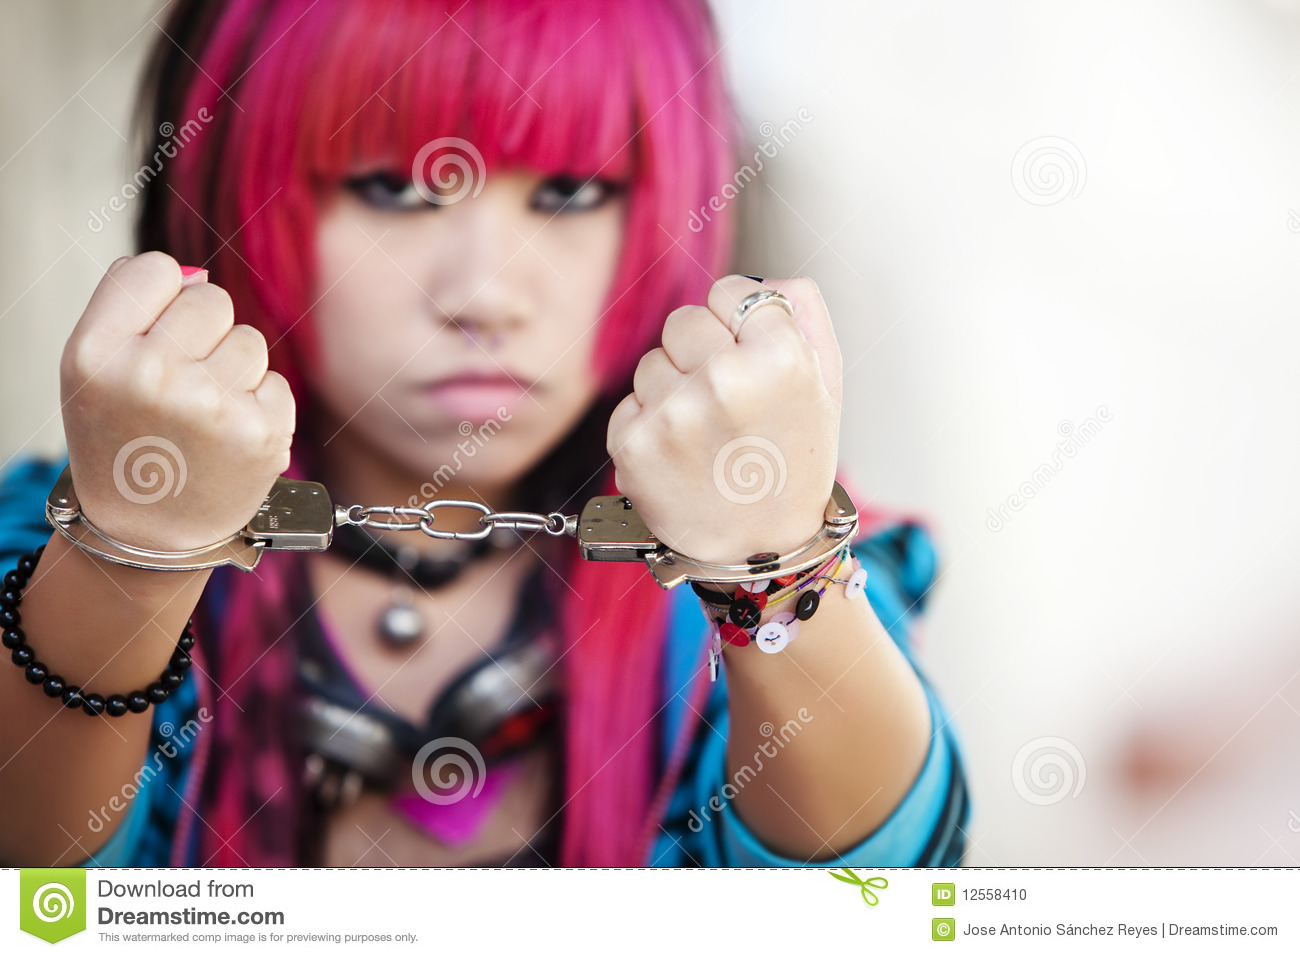 Watch How to Handcuff a Person video